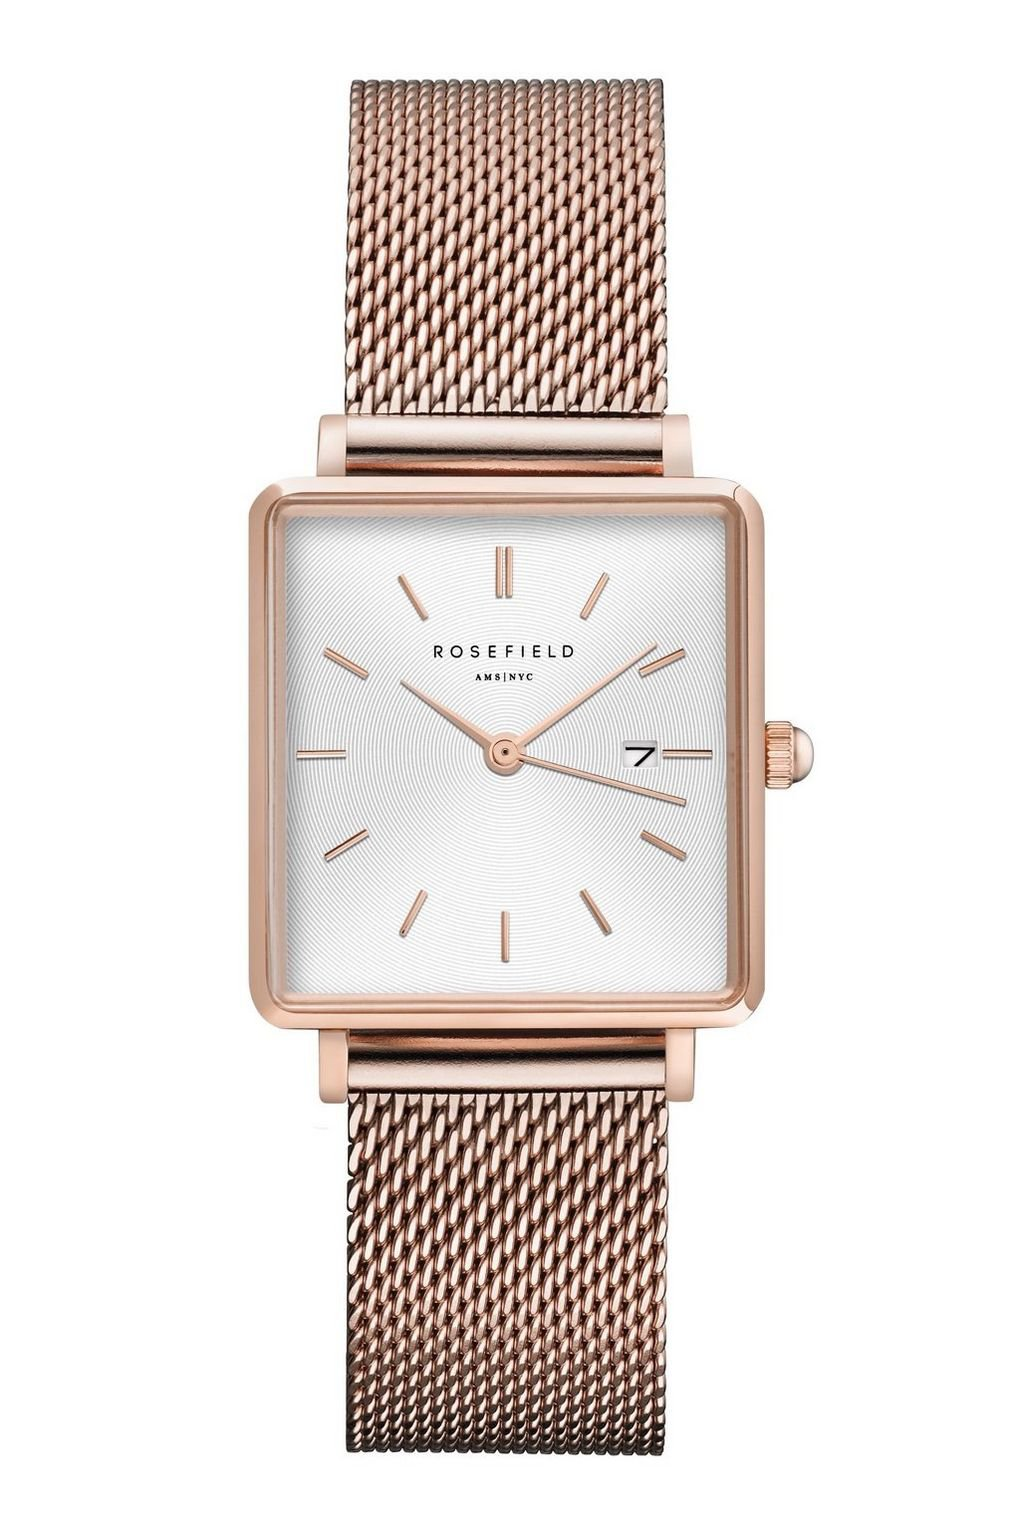 **The Boxy Rose Gold Sunray Watch by Rosefield - Watches - Bags & Accessories - Topshop